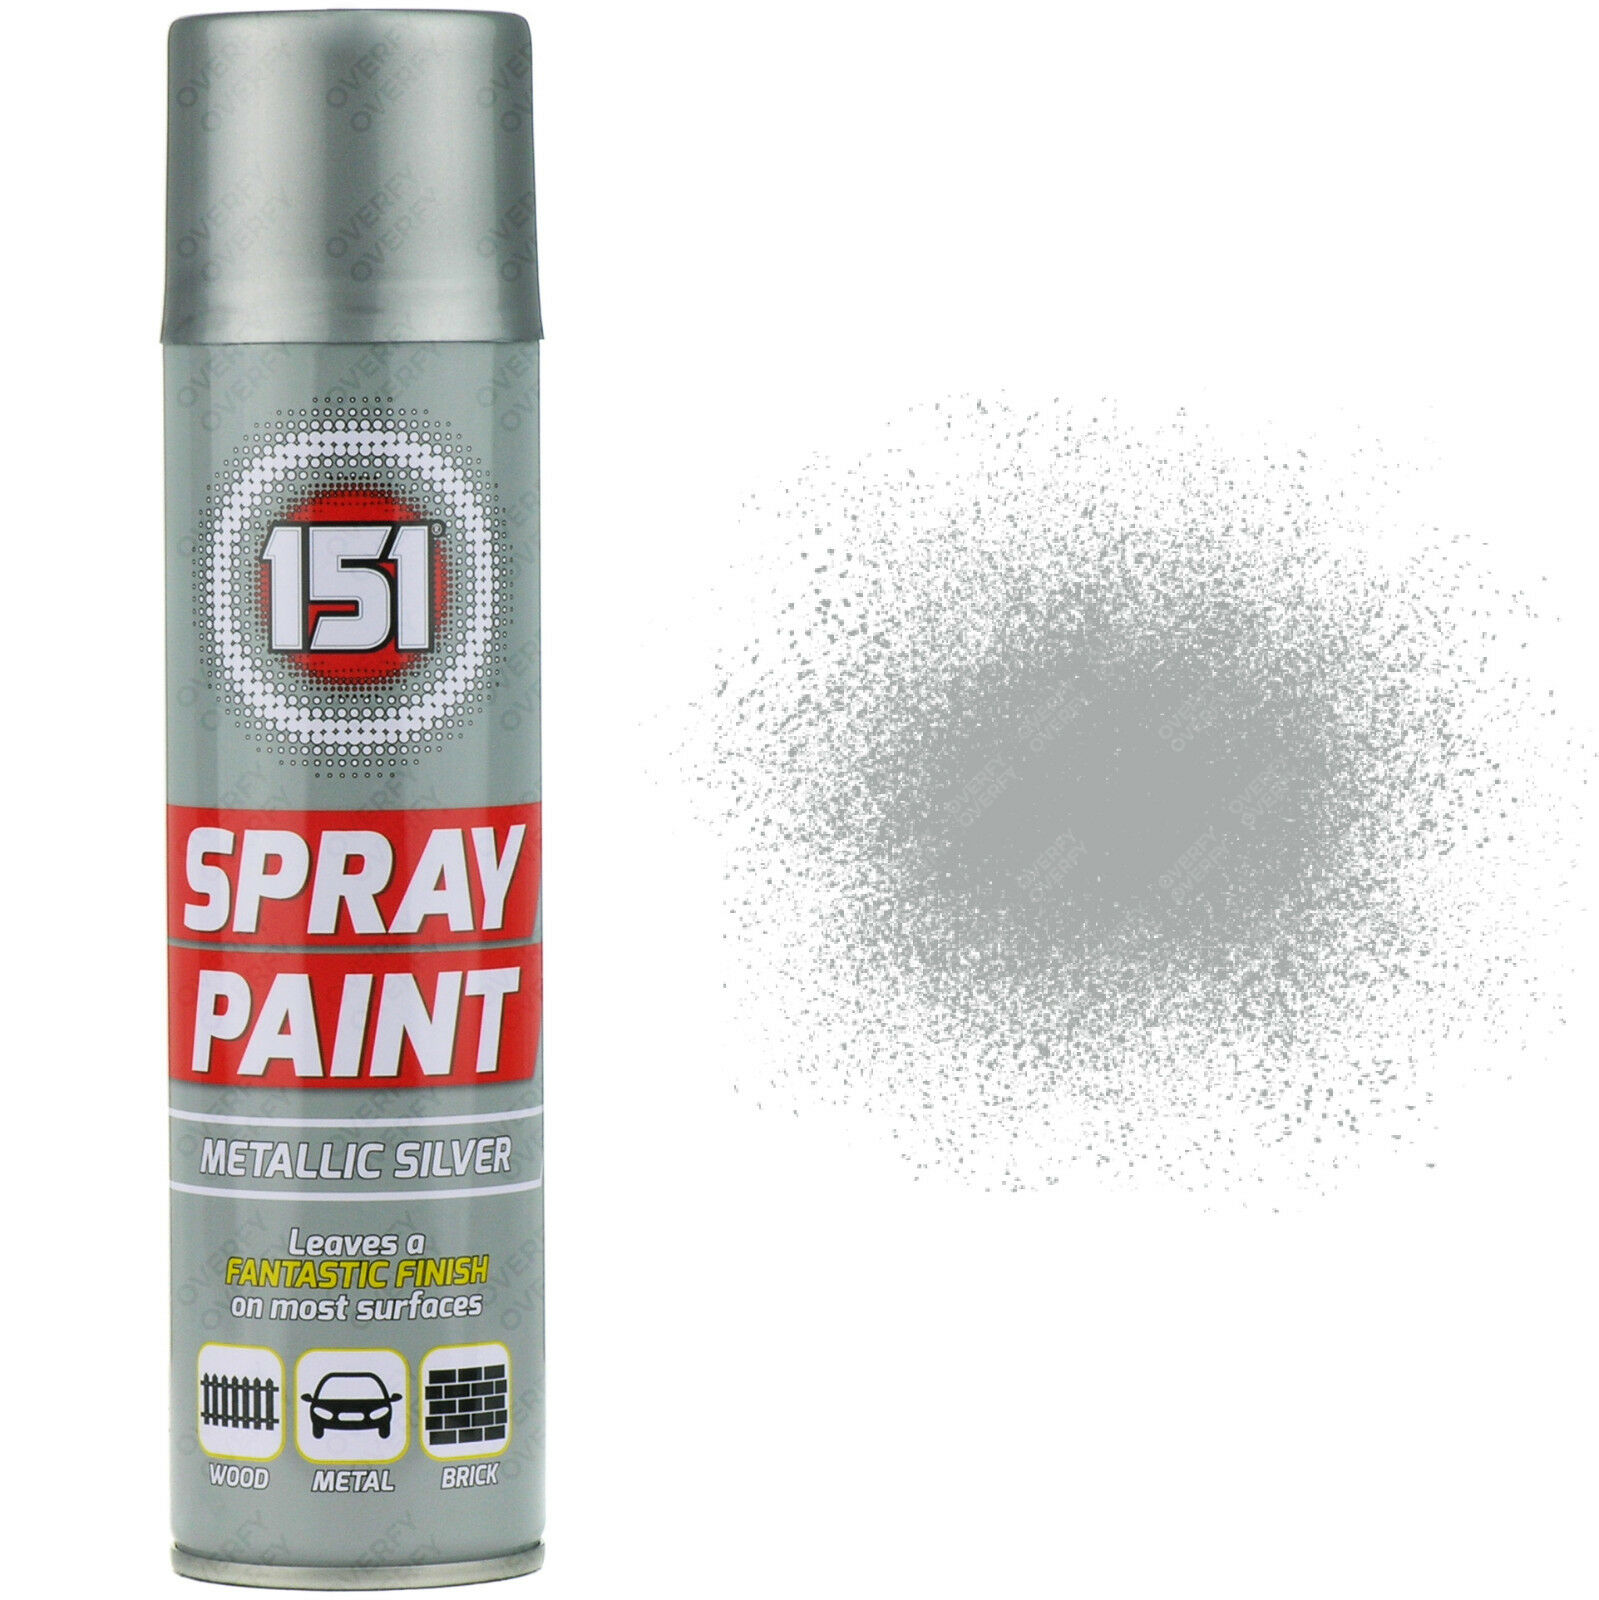 3 X 250ml 151 Metallic Silver Aerosol Paint Spray Cars Wood Metal Walls Graffiti Ebay